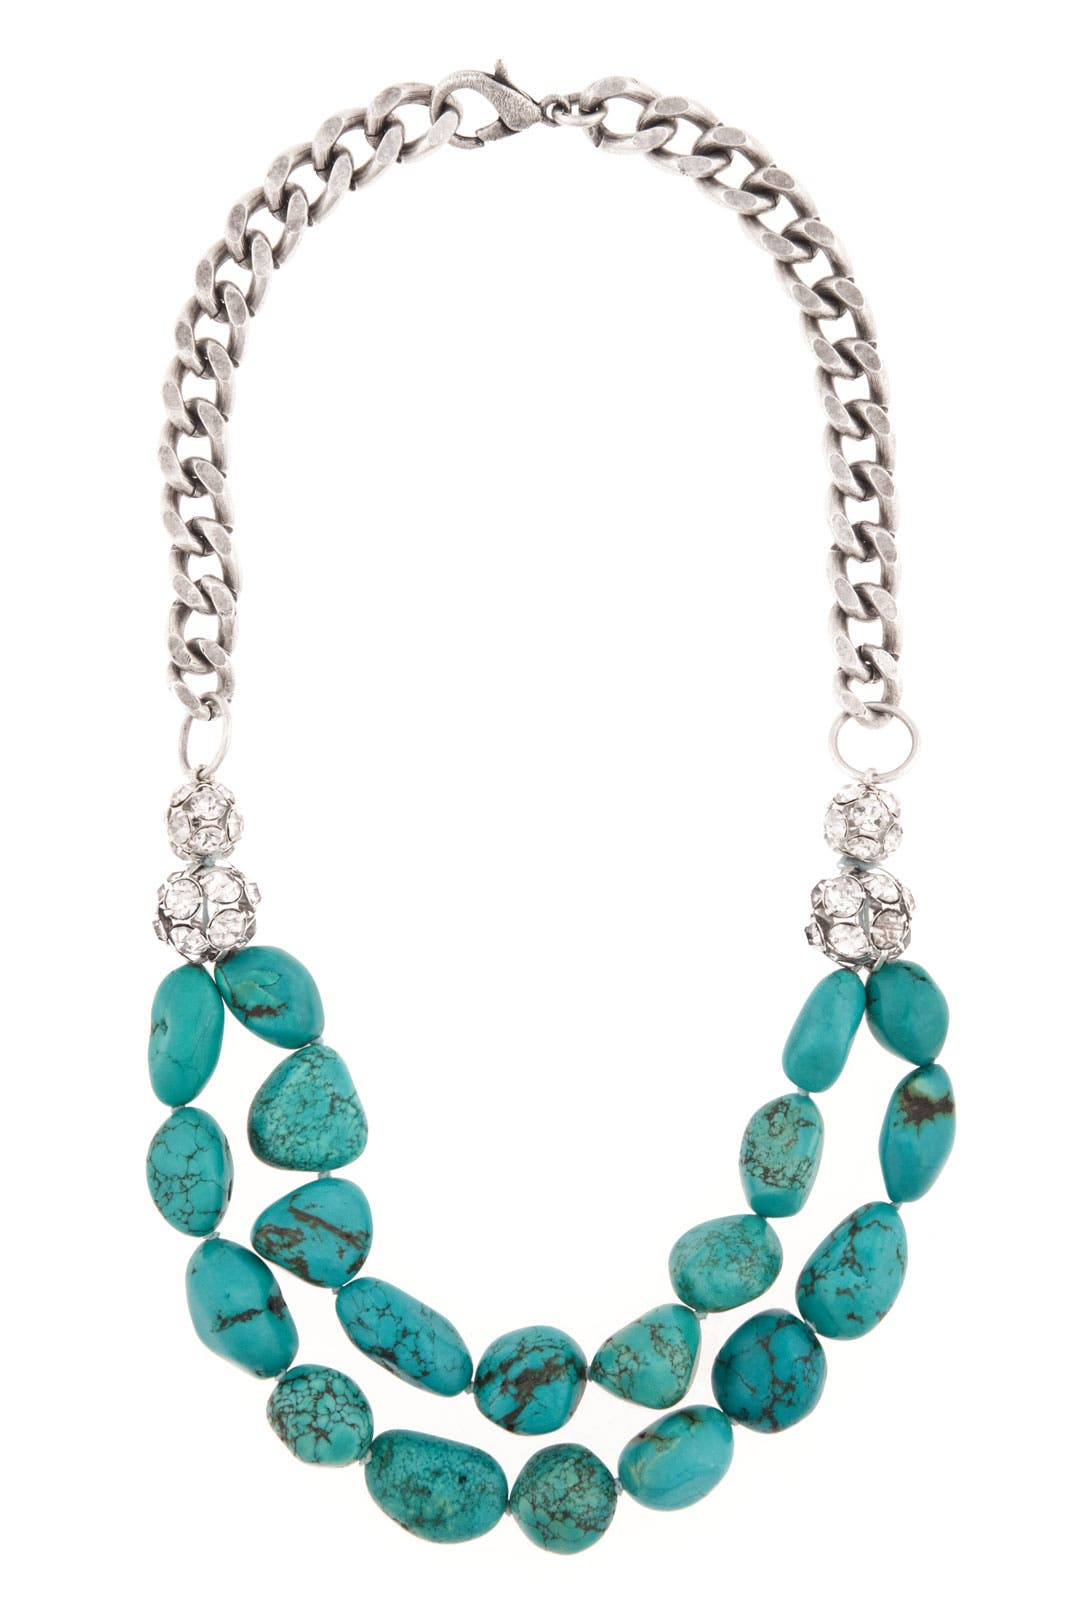 Turquoise Chain and Crystal Necklace by Janis Savitt